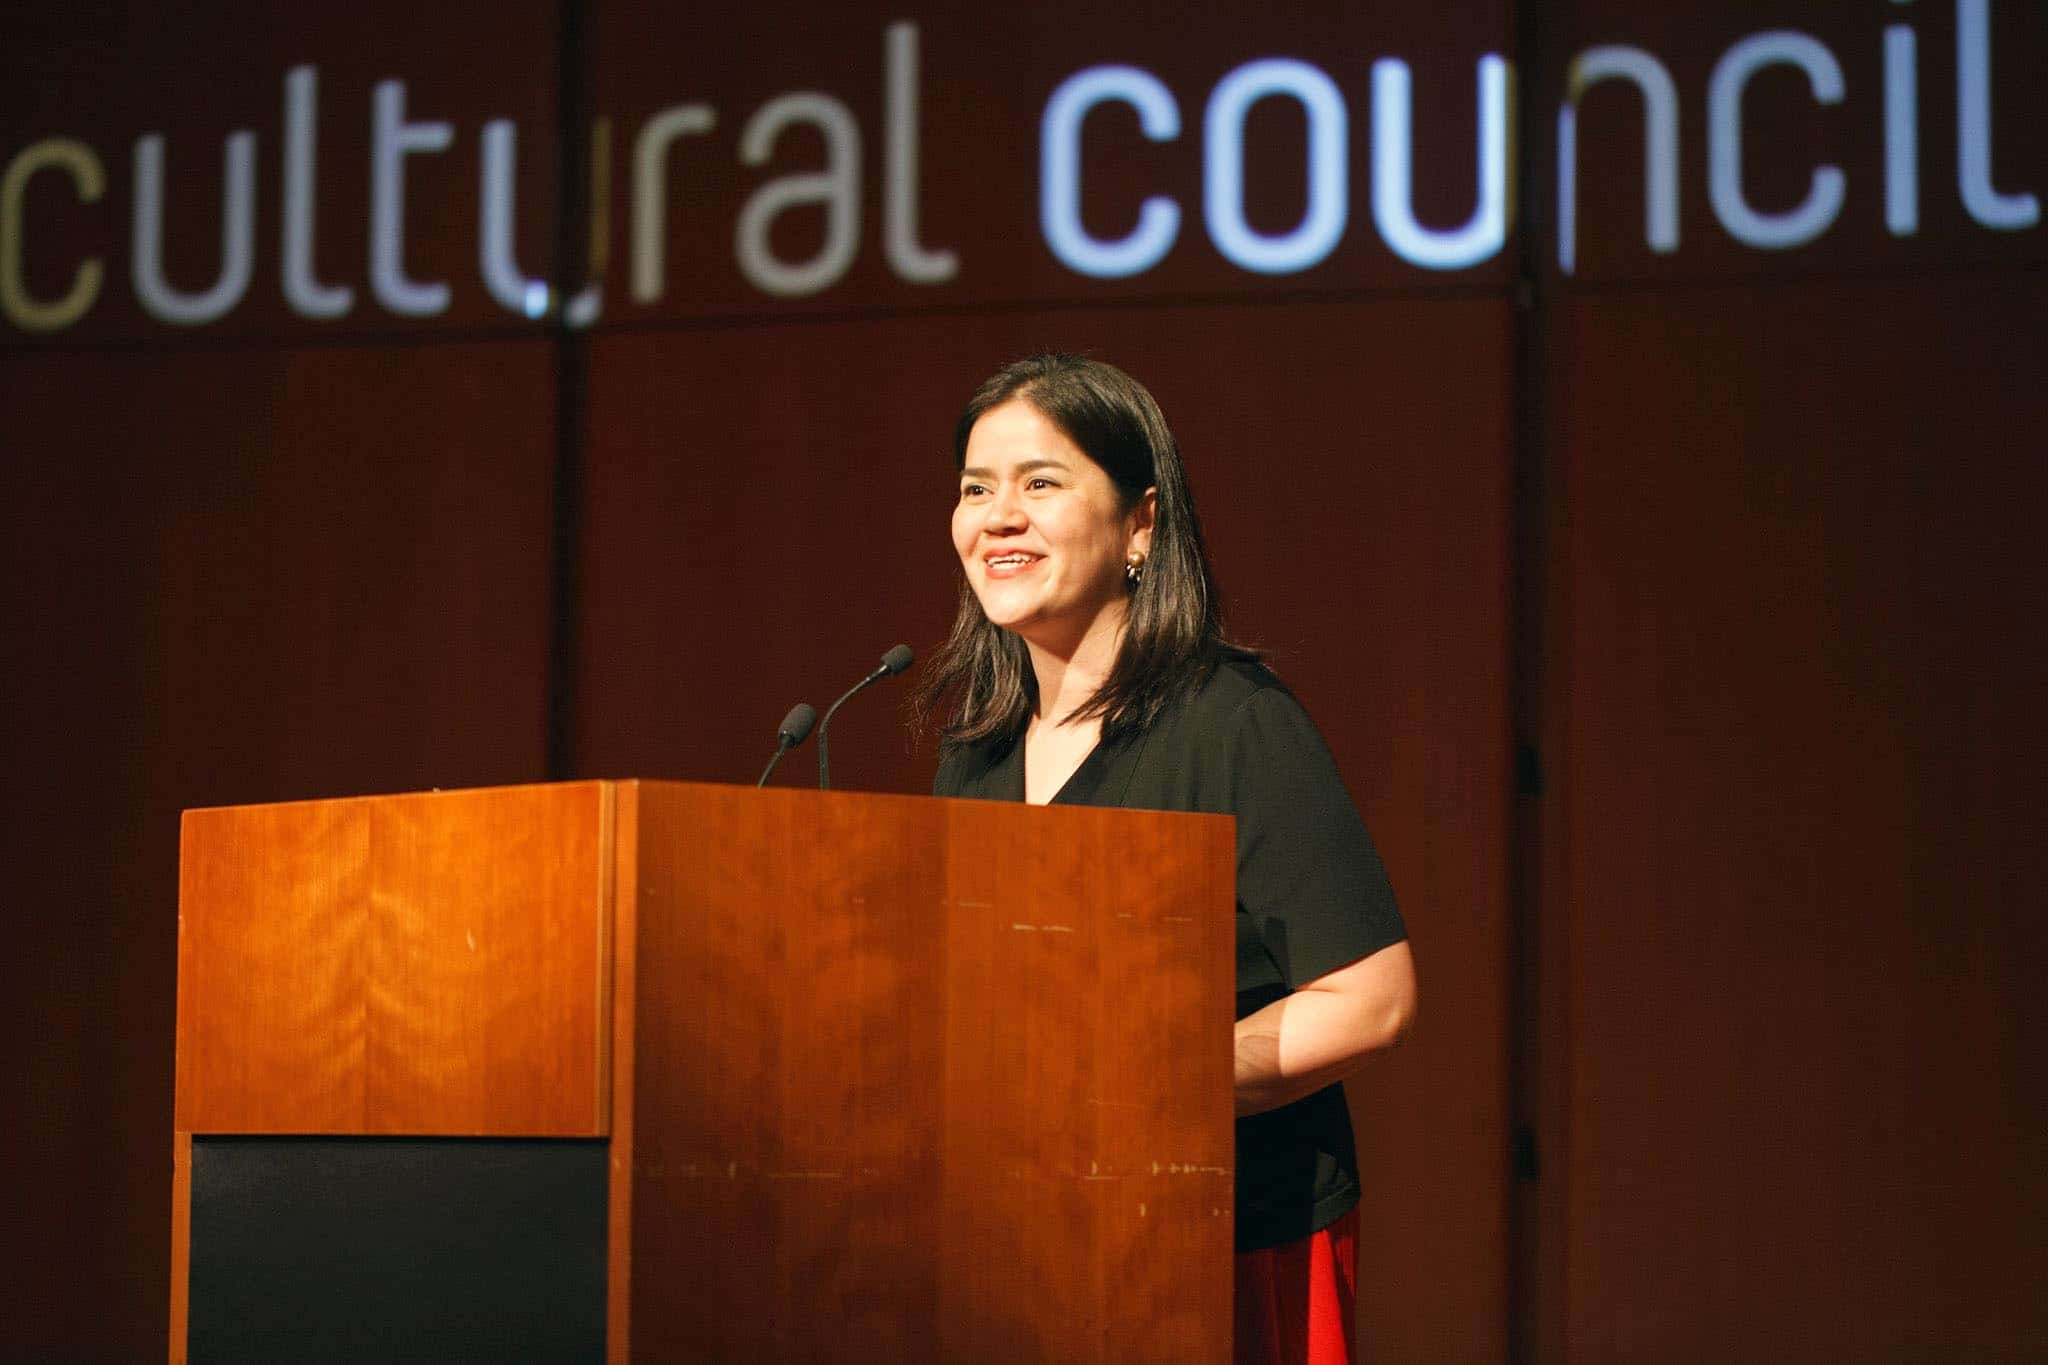 Miho Walsh, ACC's Executive Director. Photo by James Ware Billett.